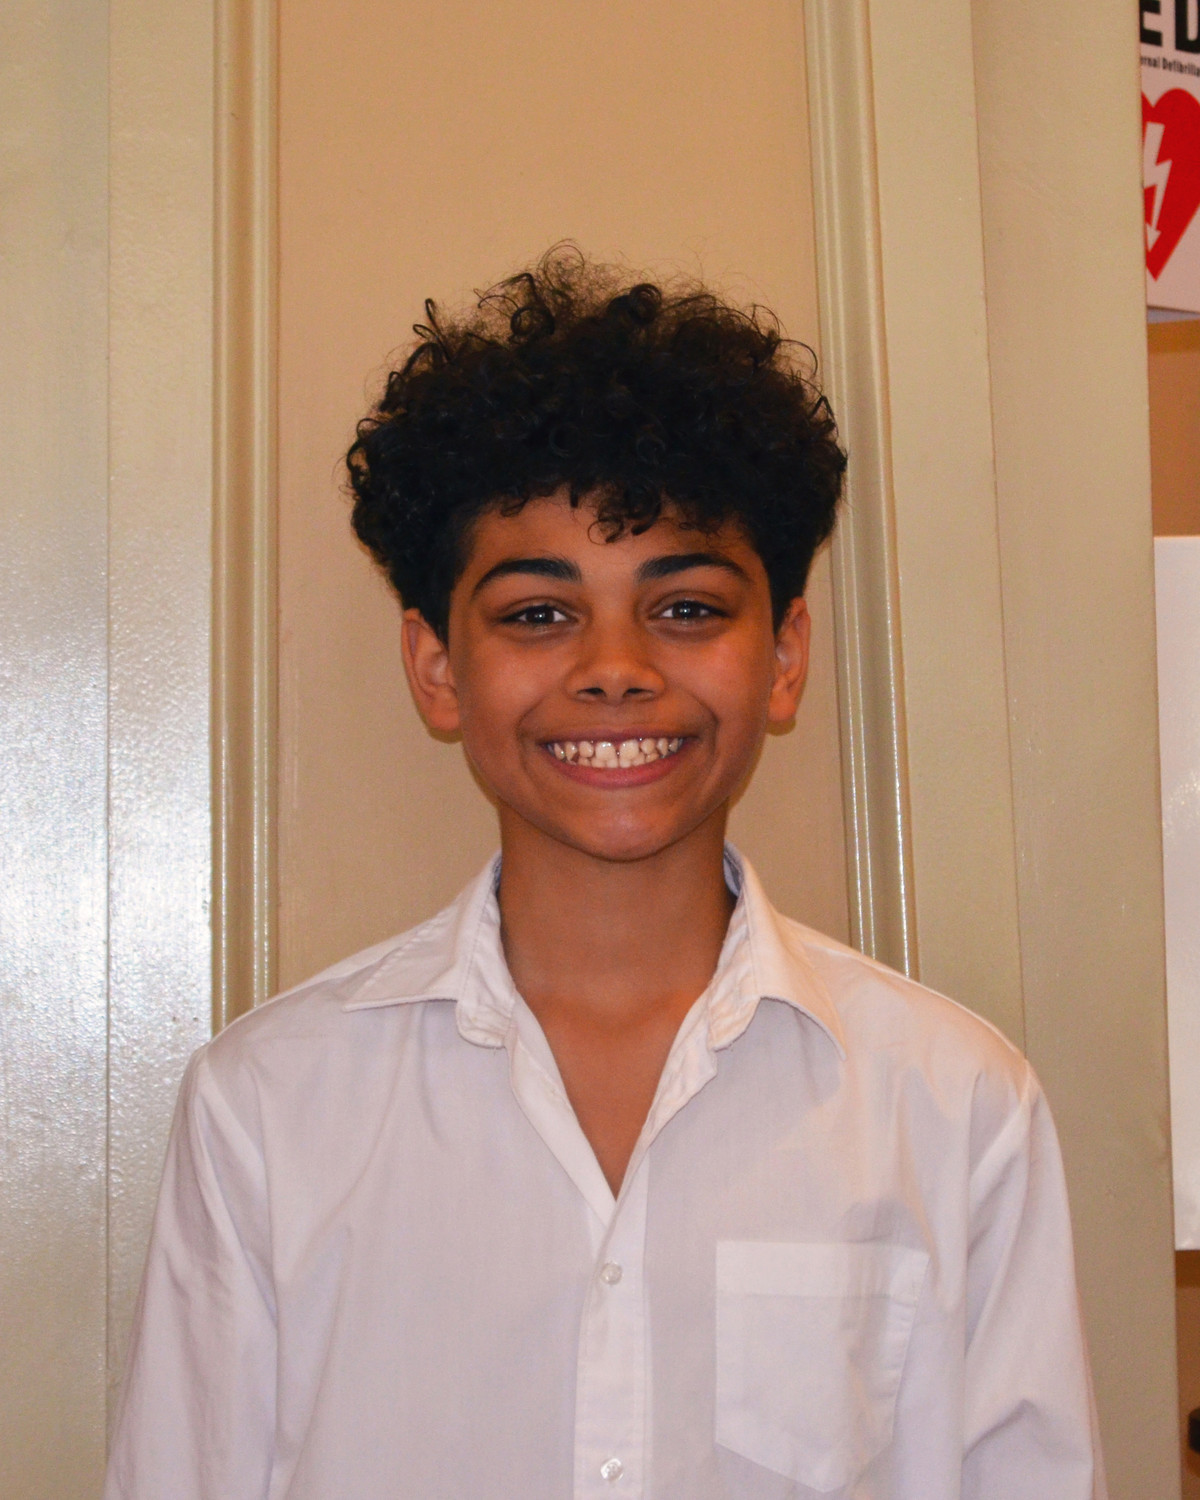 East Providence Student Cast in A Christmas Carol - Reporter Today